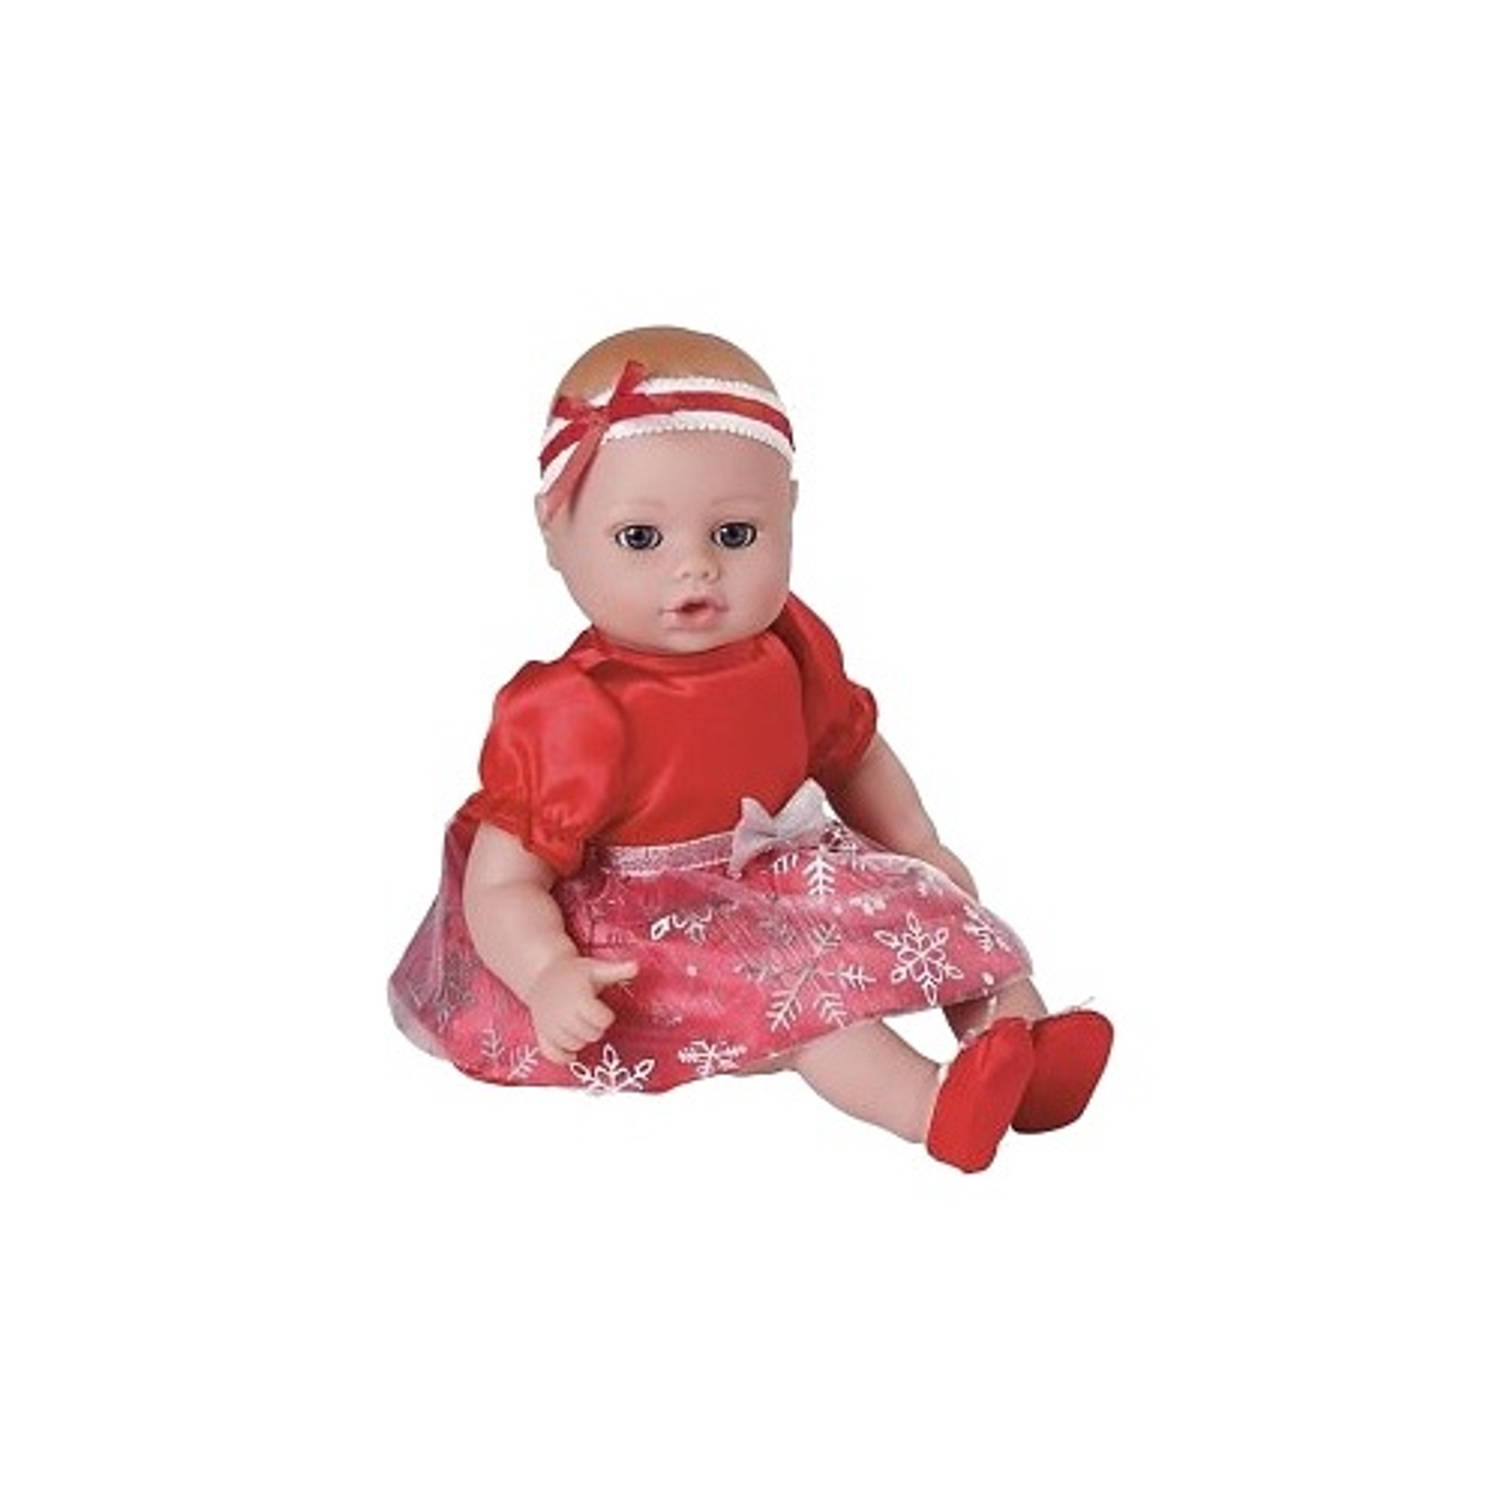 Adora Playtime Baby Snowflake rood meisjes 33 cm